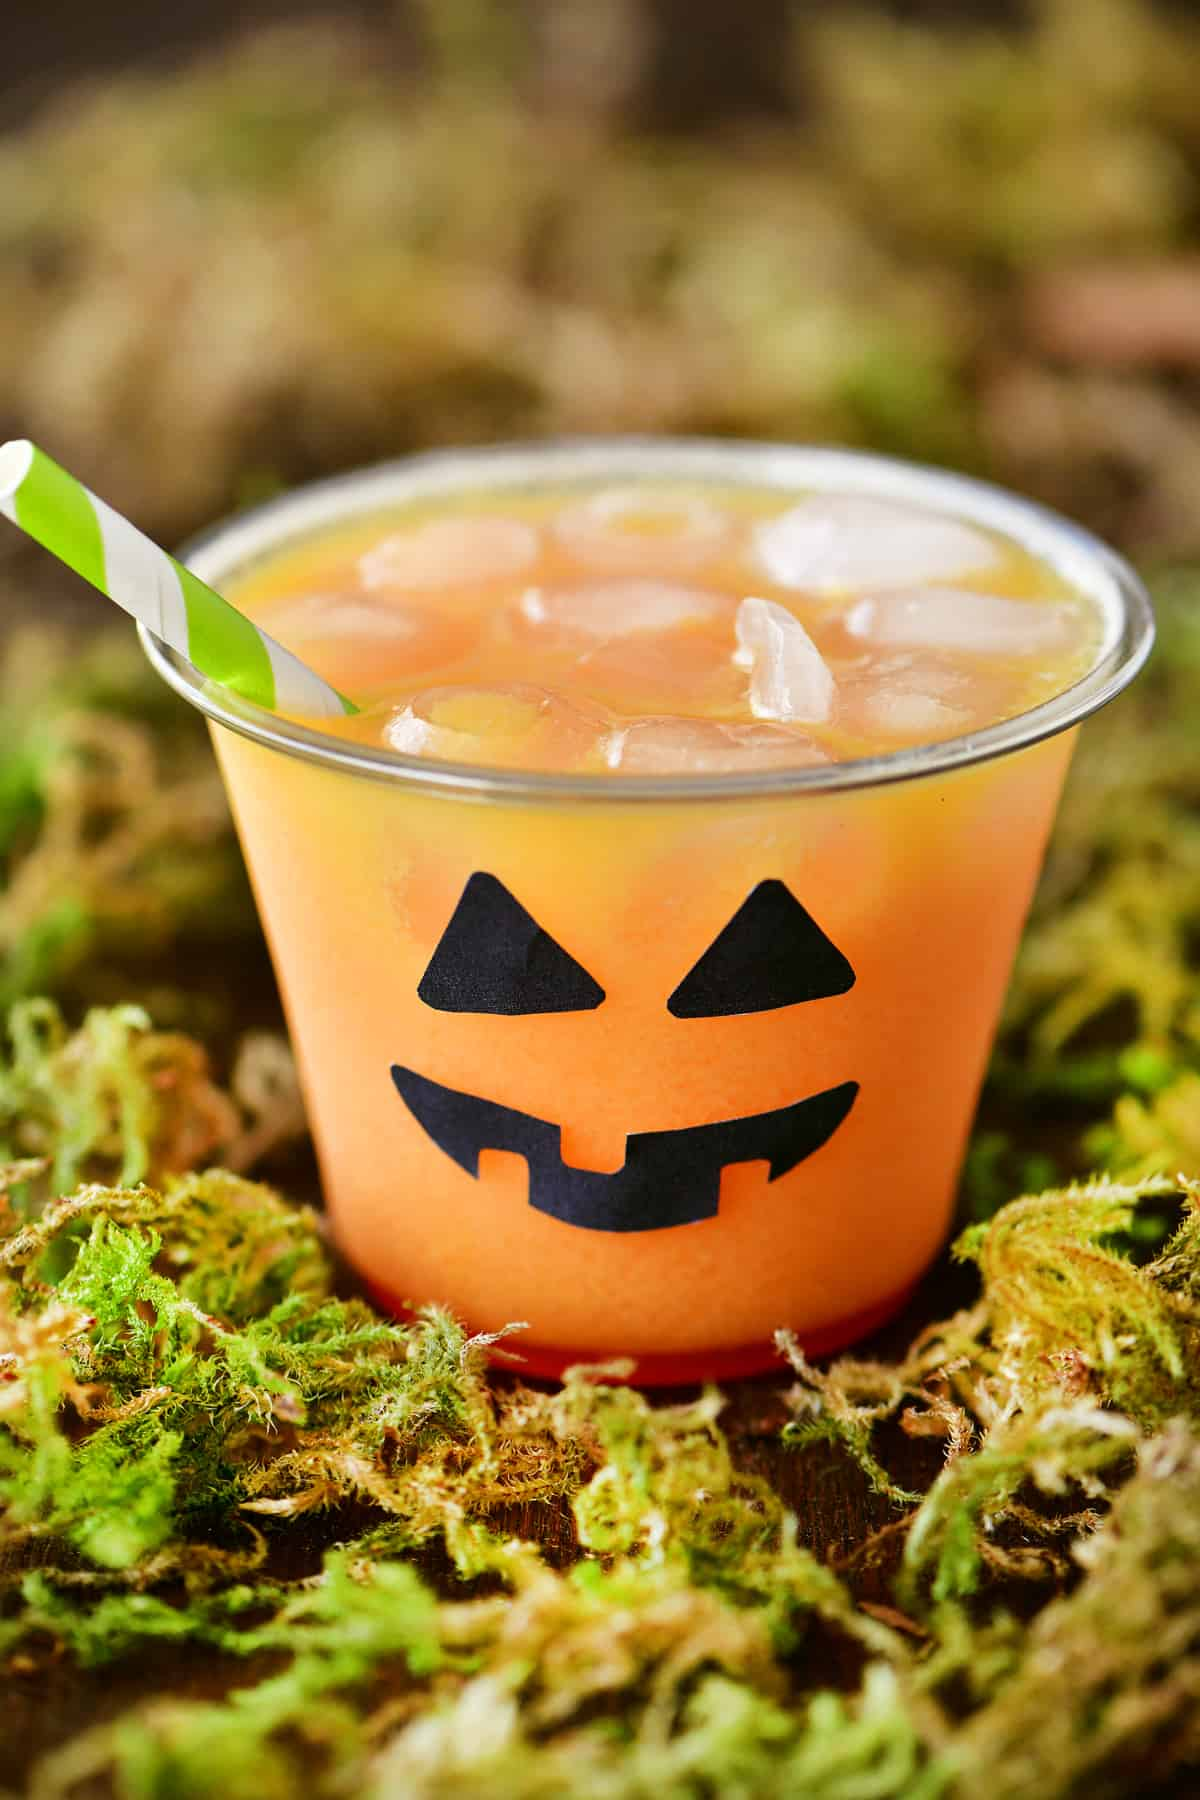 a photo of an orange Halloween drink with a jack-o-lantern theme